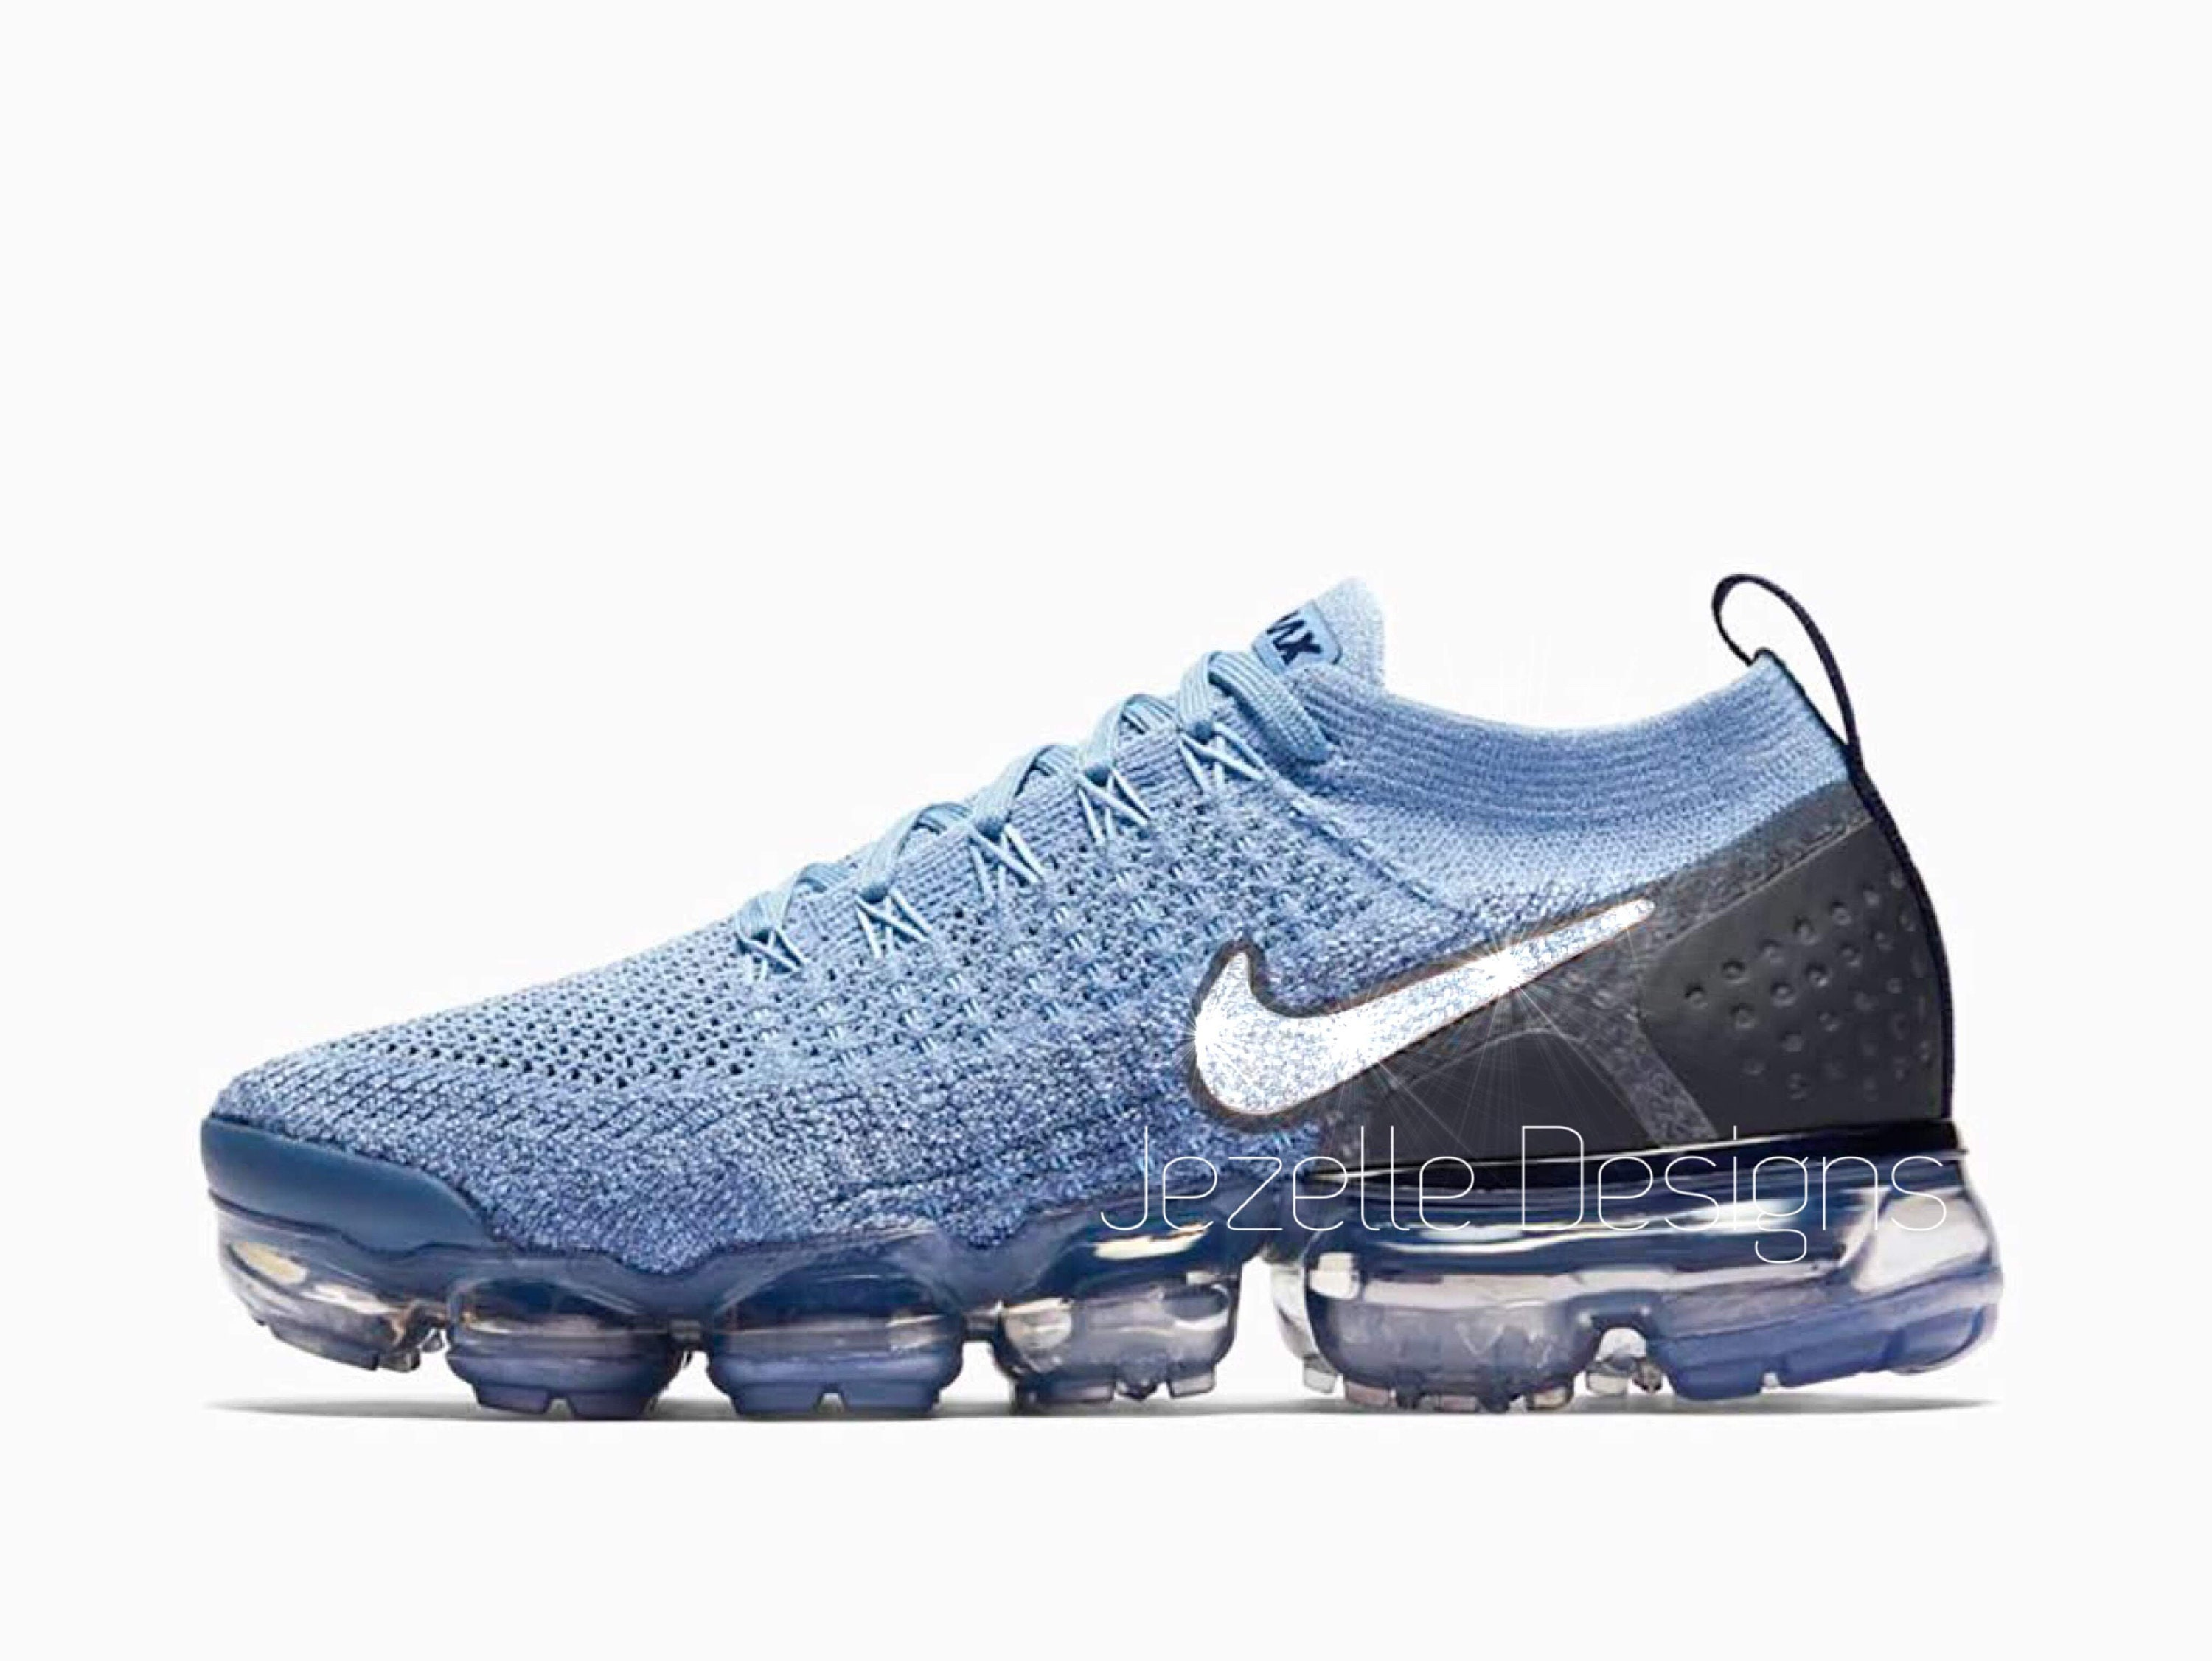 95ba8671f04f Swarovski Nike Womens Air VaporMax Flyknit 2 in Blue